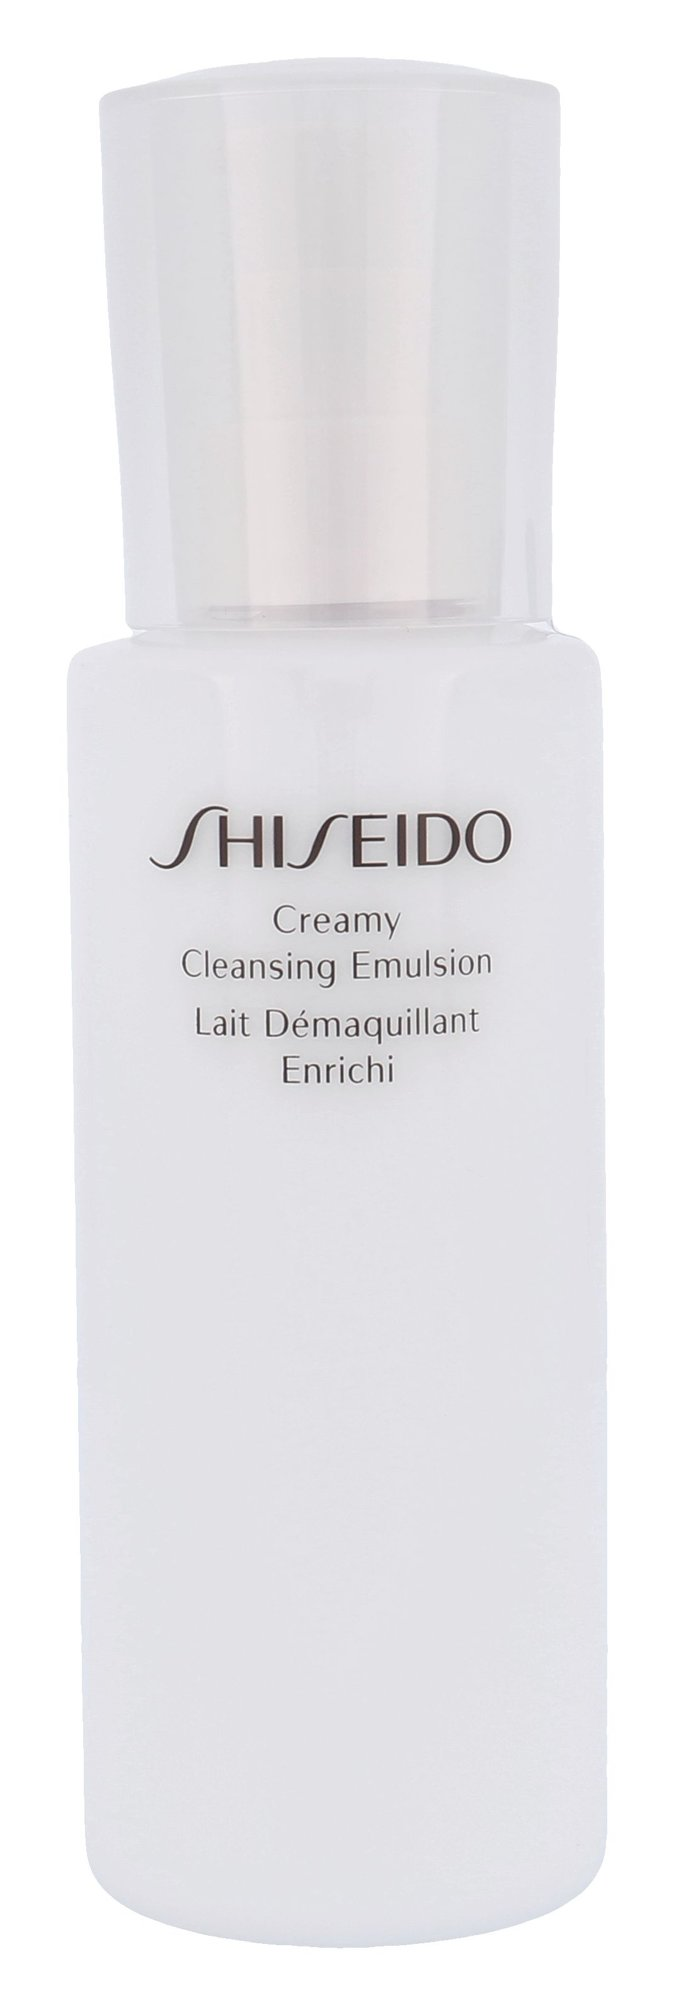 Shiseido Creamy Cleansing Emulsion Cosmetic 200ml